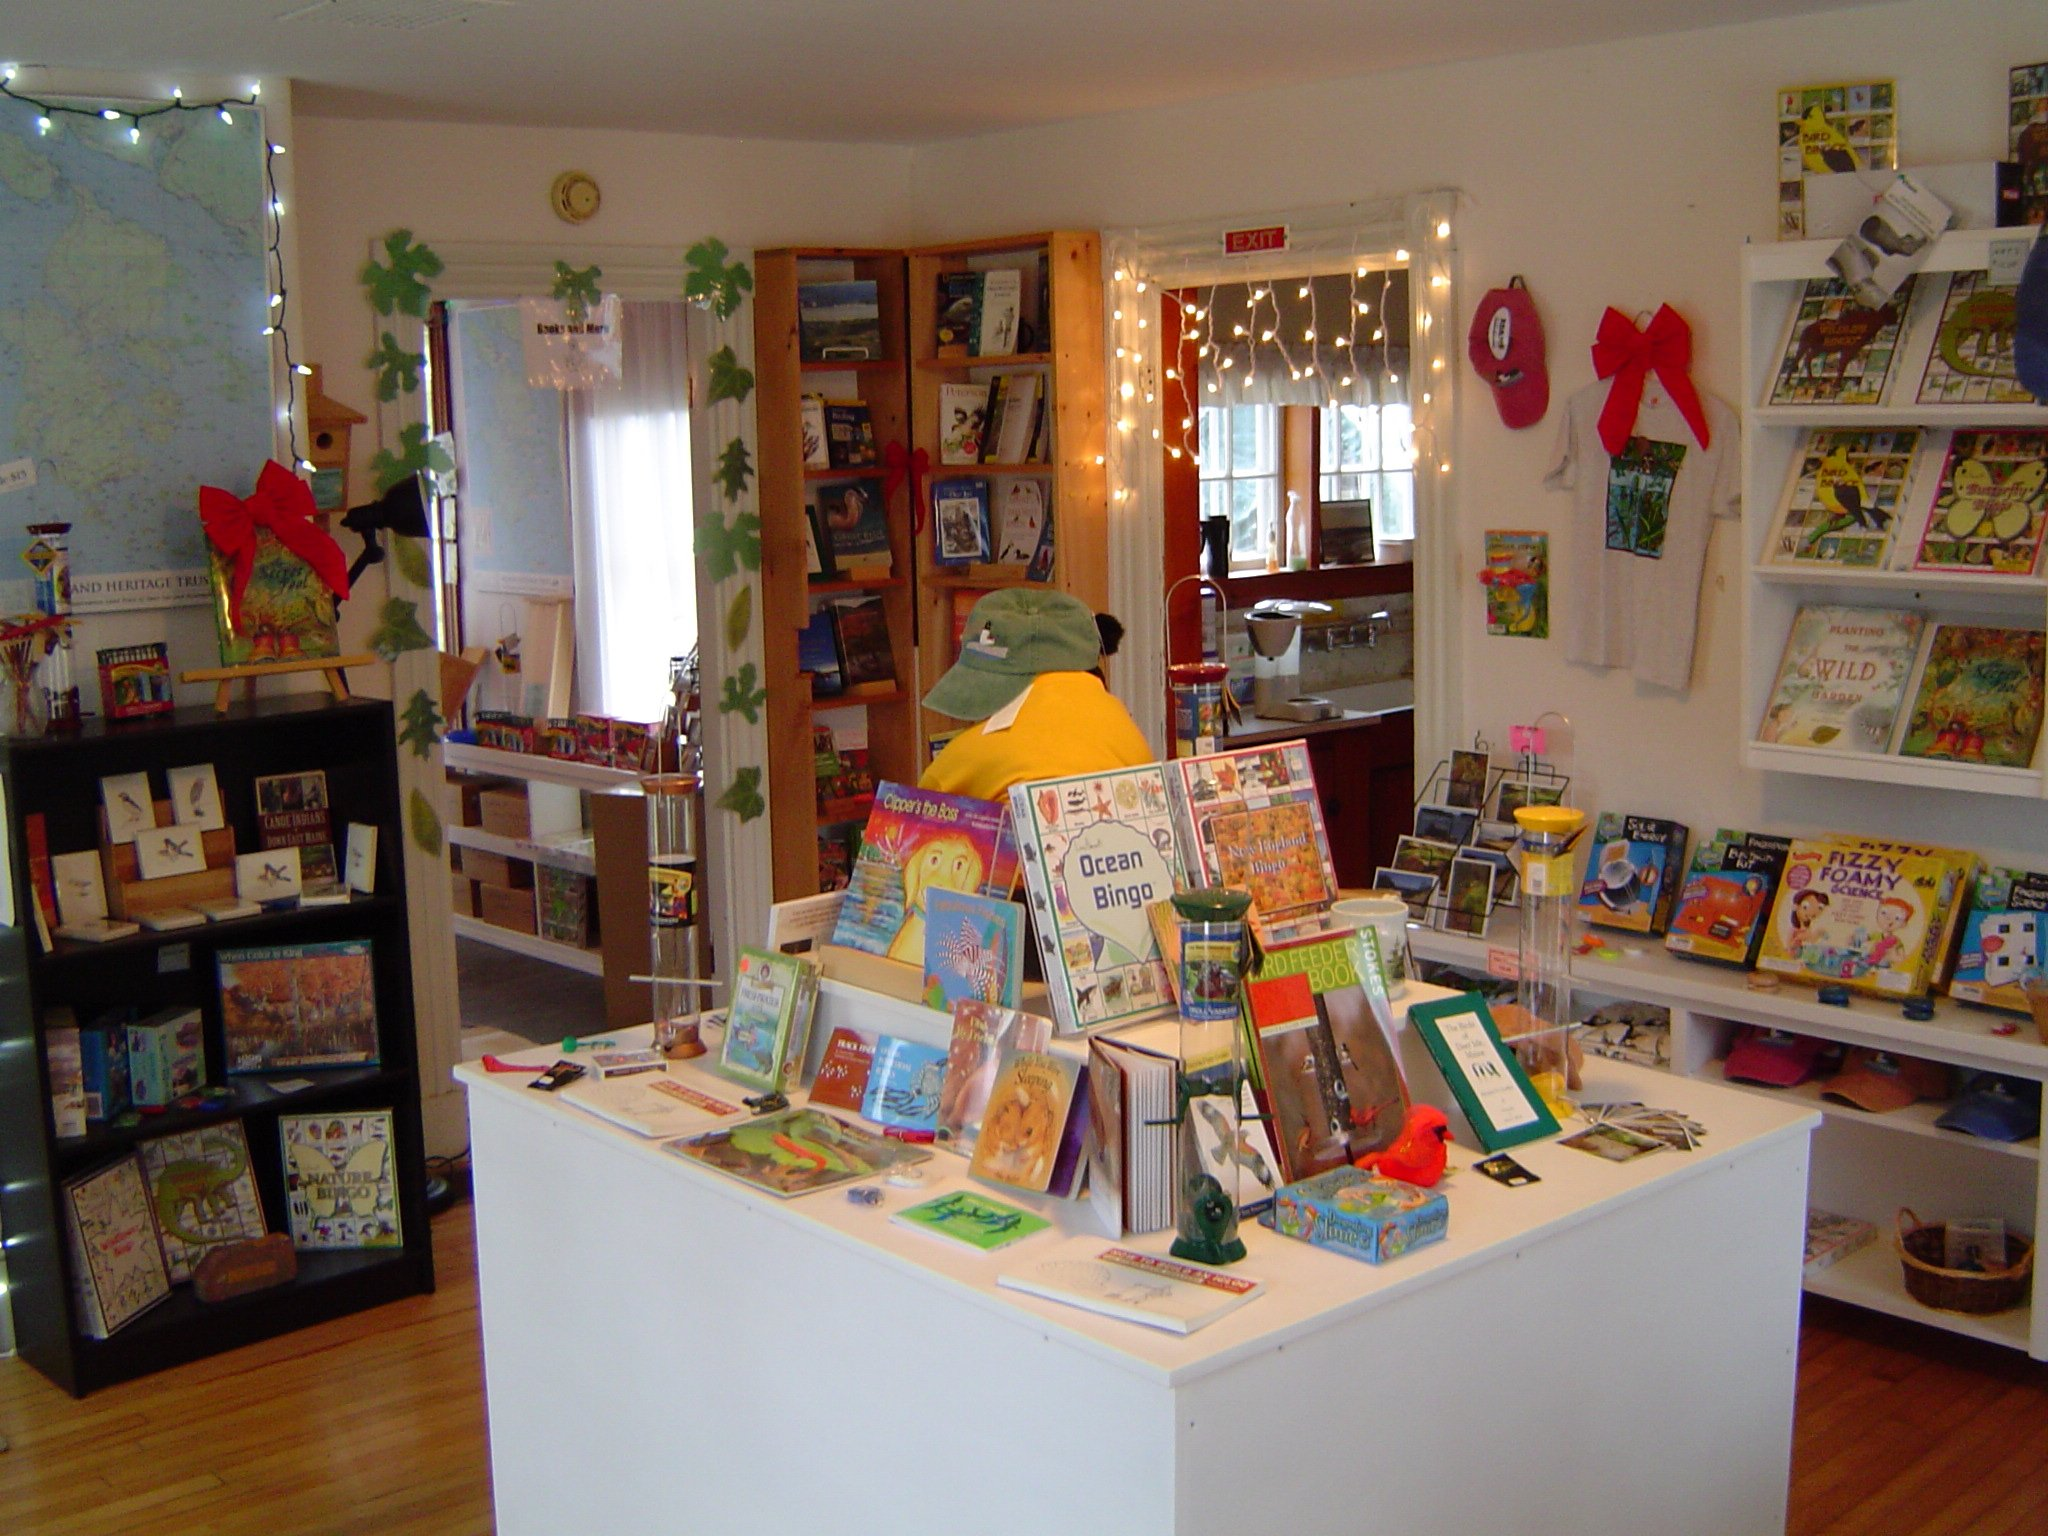 Island Heritage Trust's Nature Shop, full of great things for all ages.  Maps, games, guides, toys, cards, books.